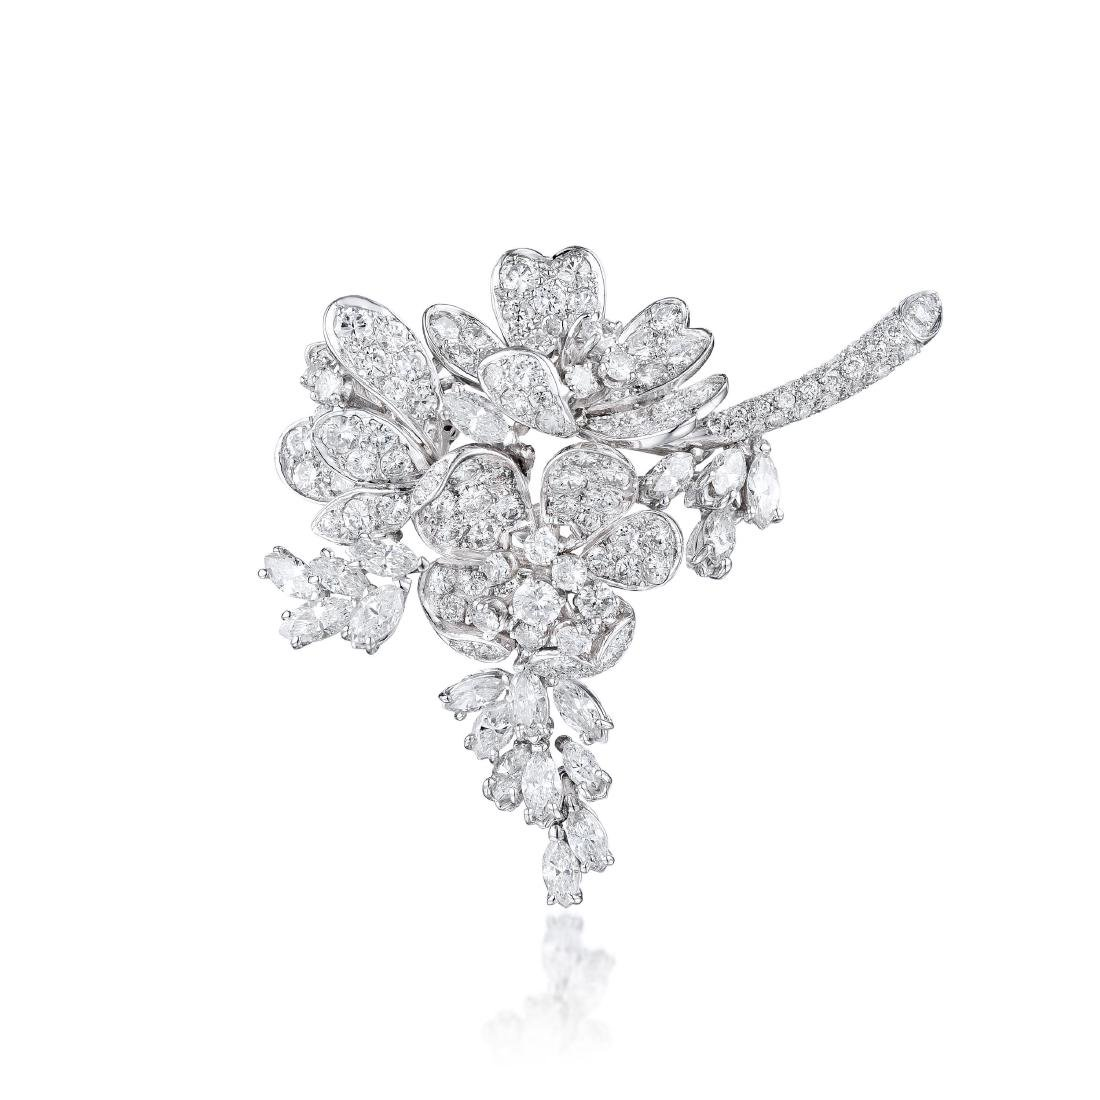 A Platinum Diamond Brooch / Pendant